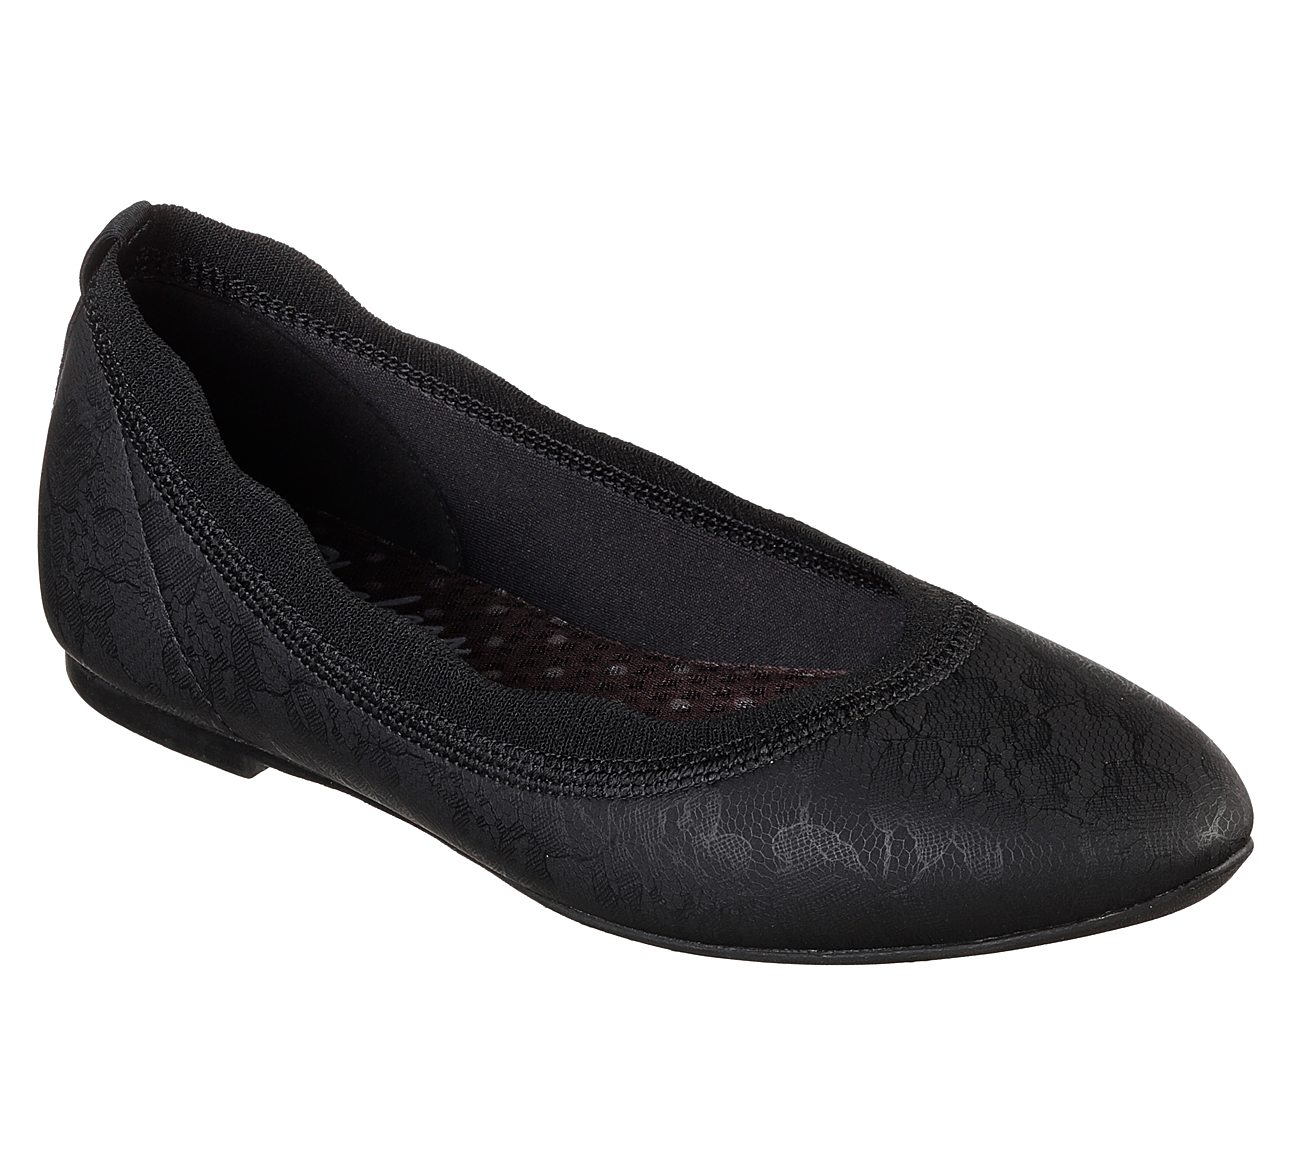 af809c37a1e0 Buy SKECHERS Cleo - Lace Place Modern Comfort Shoes only  35.00